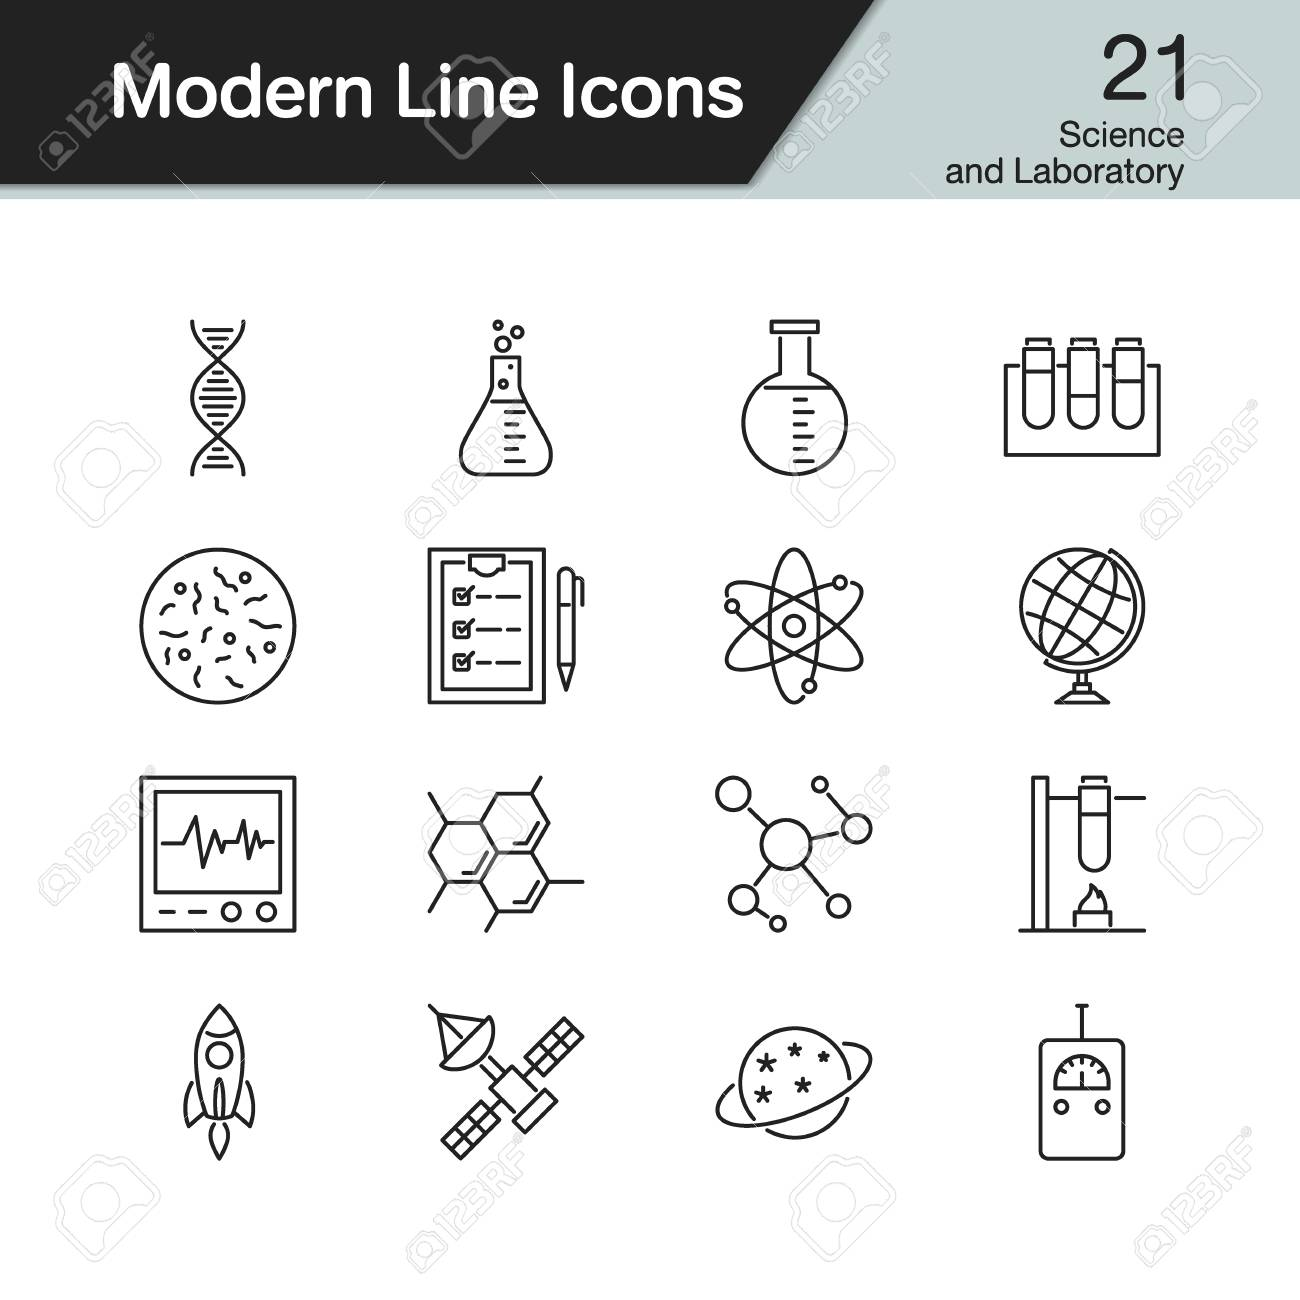 science and laboratory icons modern line design set 21 for